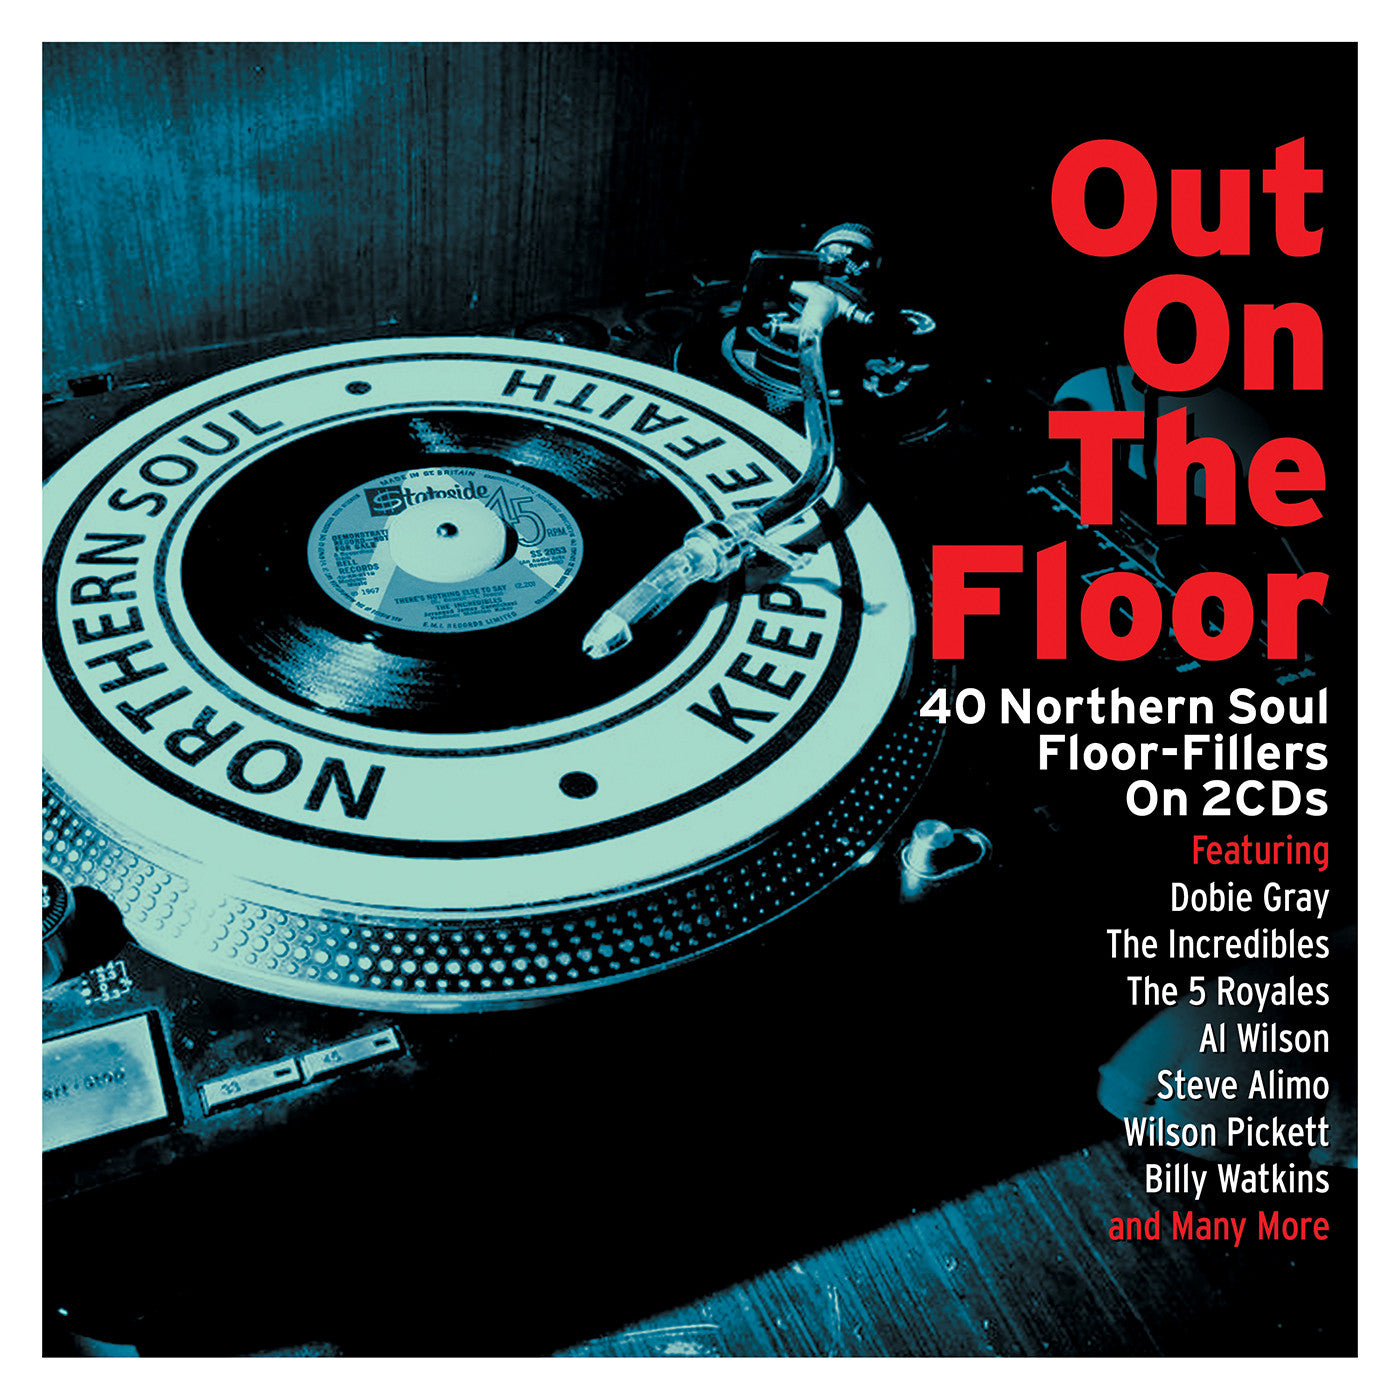 OUT ON THE FLOOR - NORTHERN SOUL FLOOR FILLERS (2 CDS)